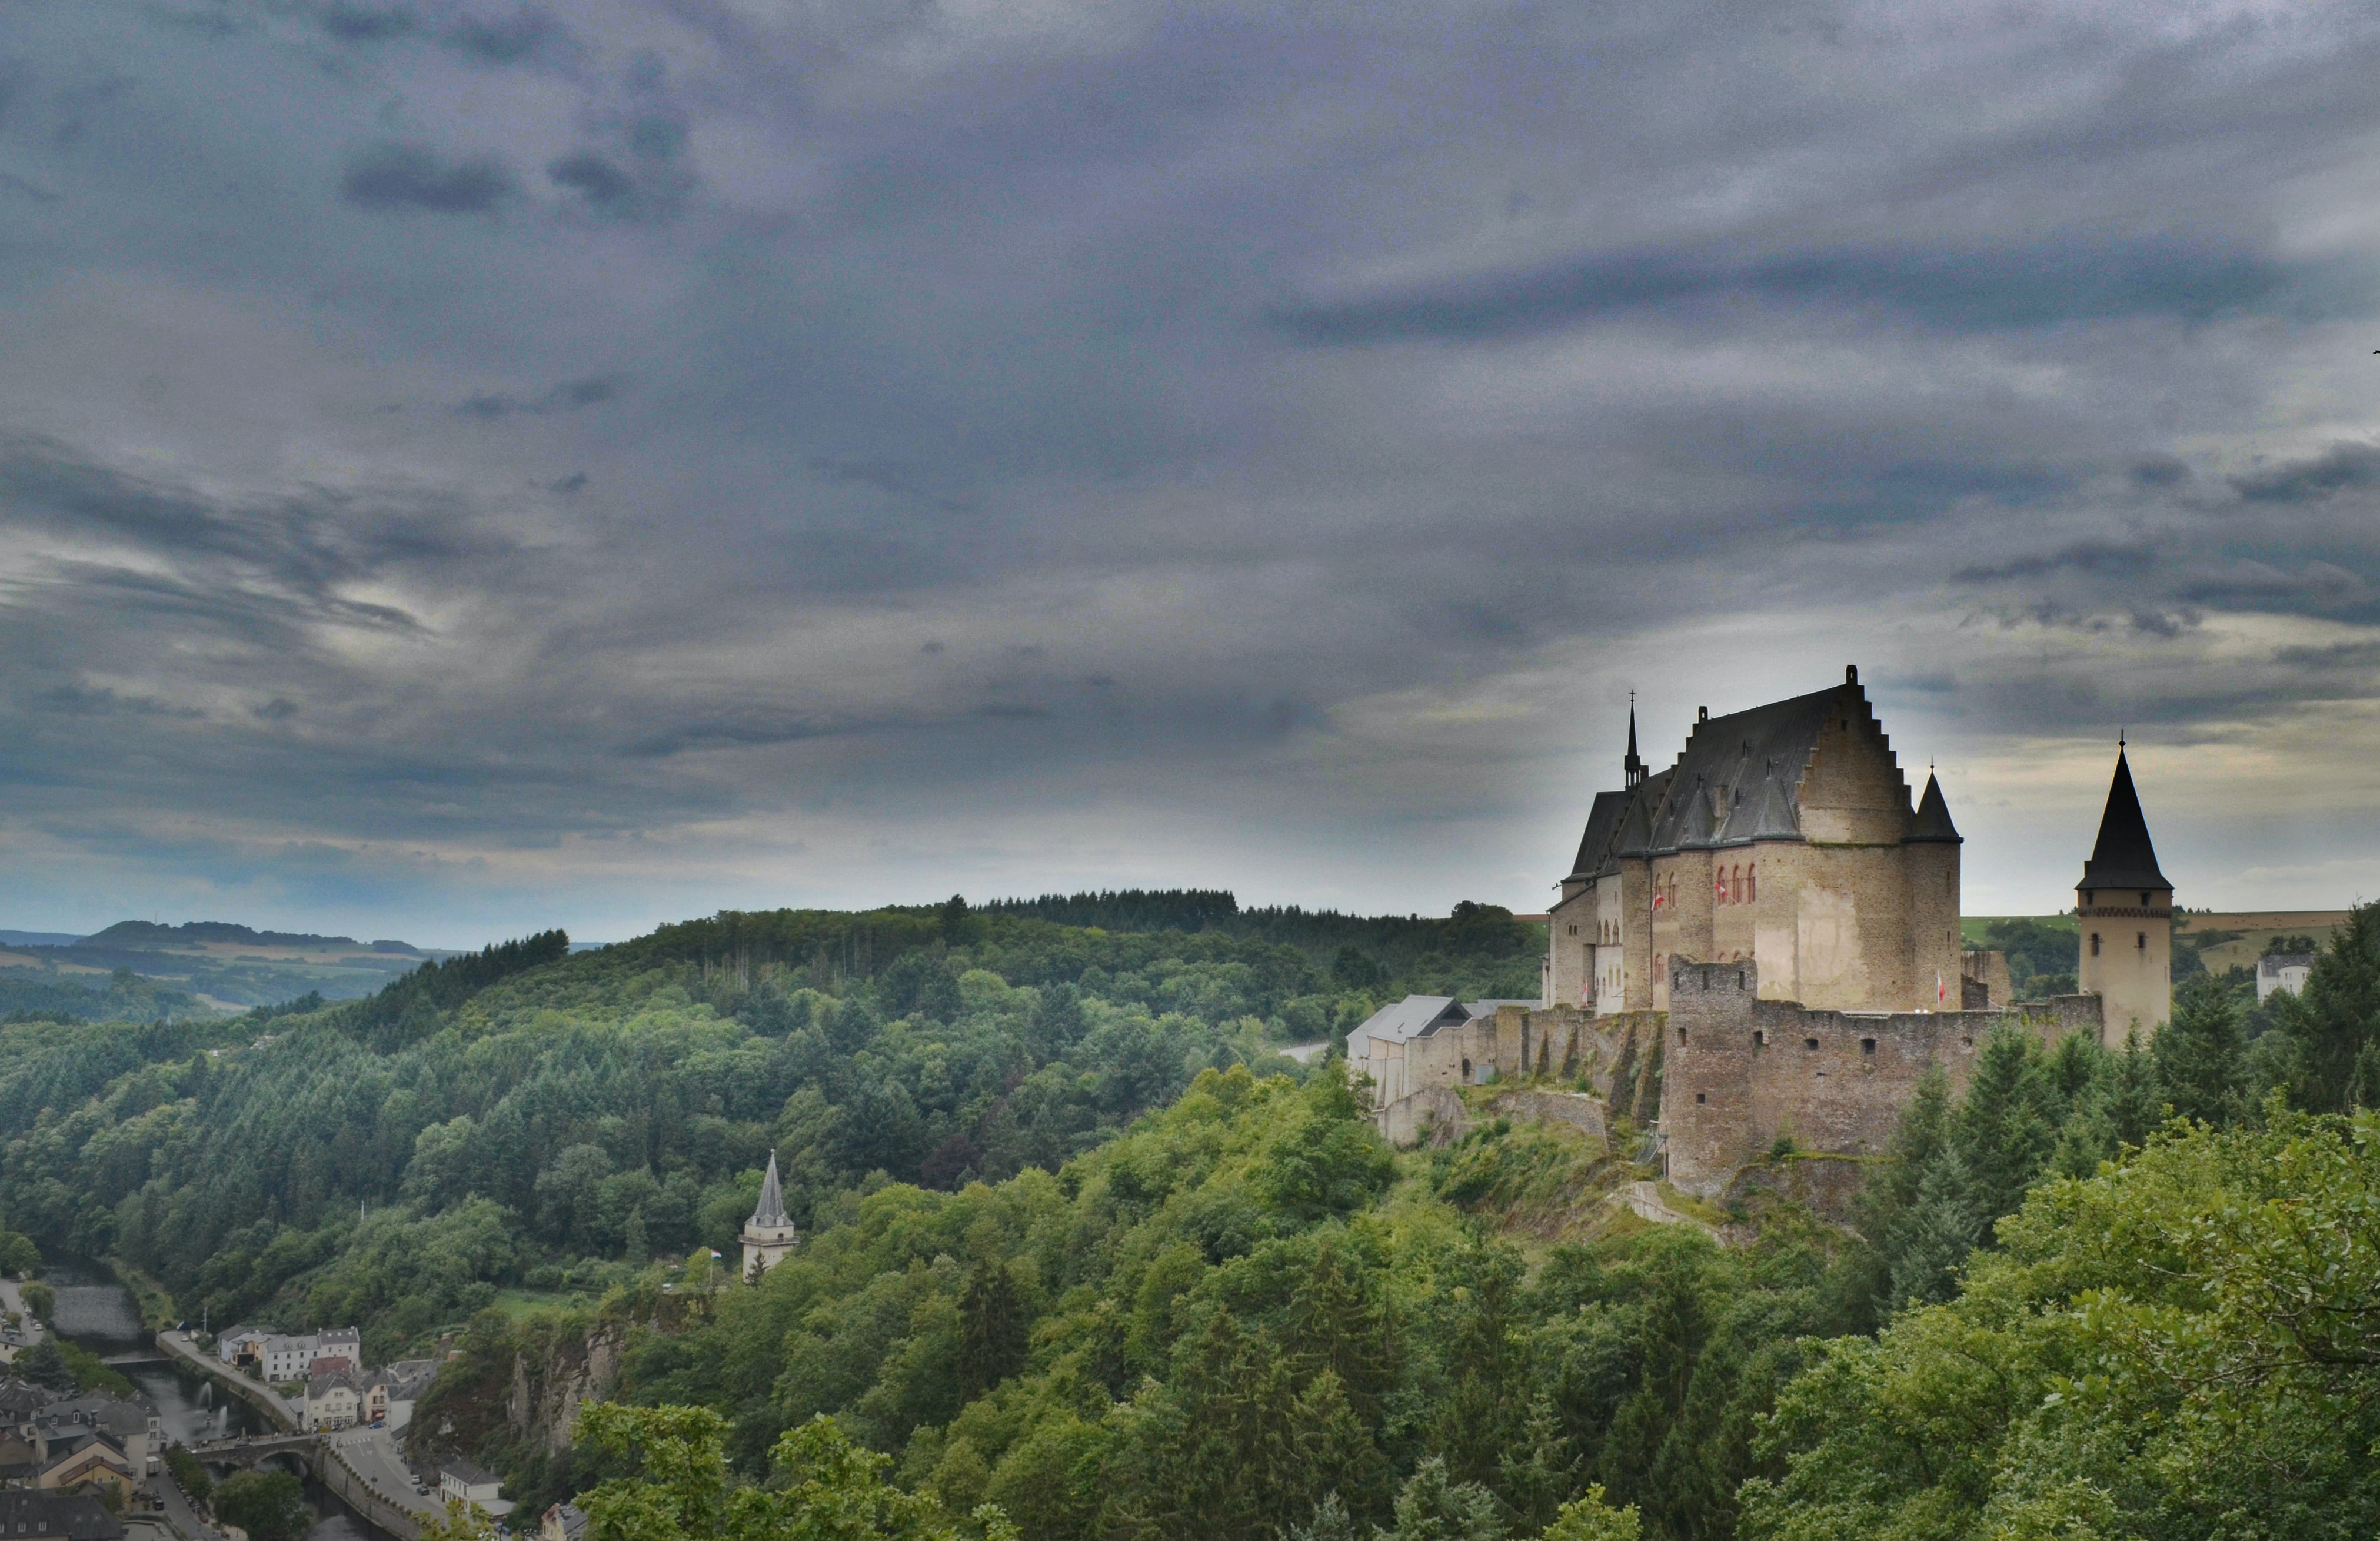 A medieval castle on a hill near a town in Luxembourg